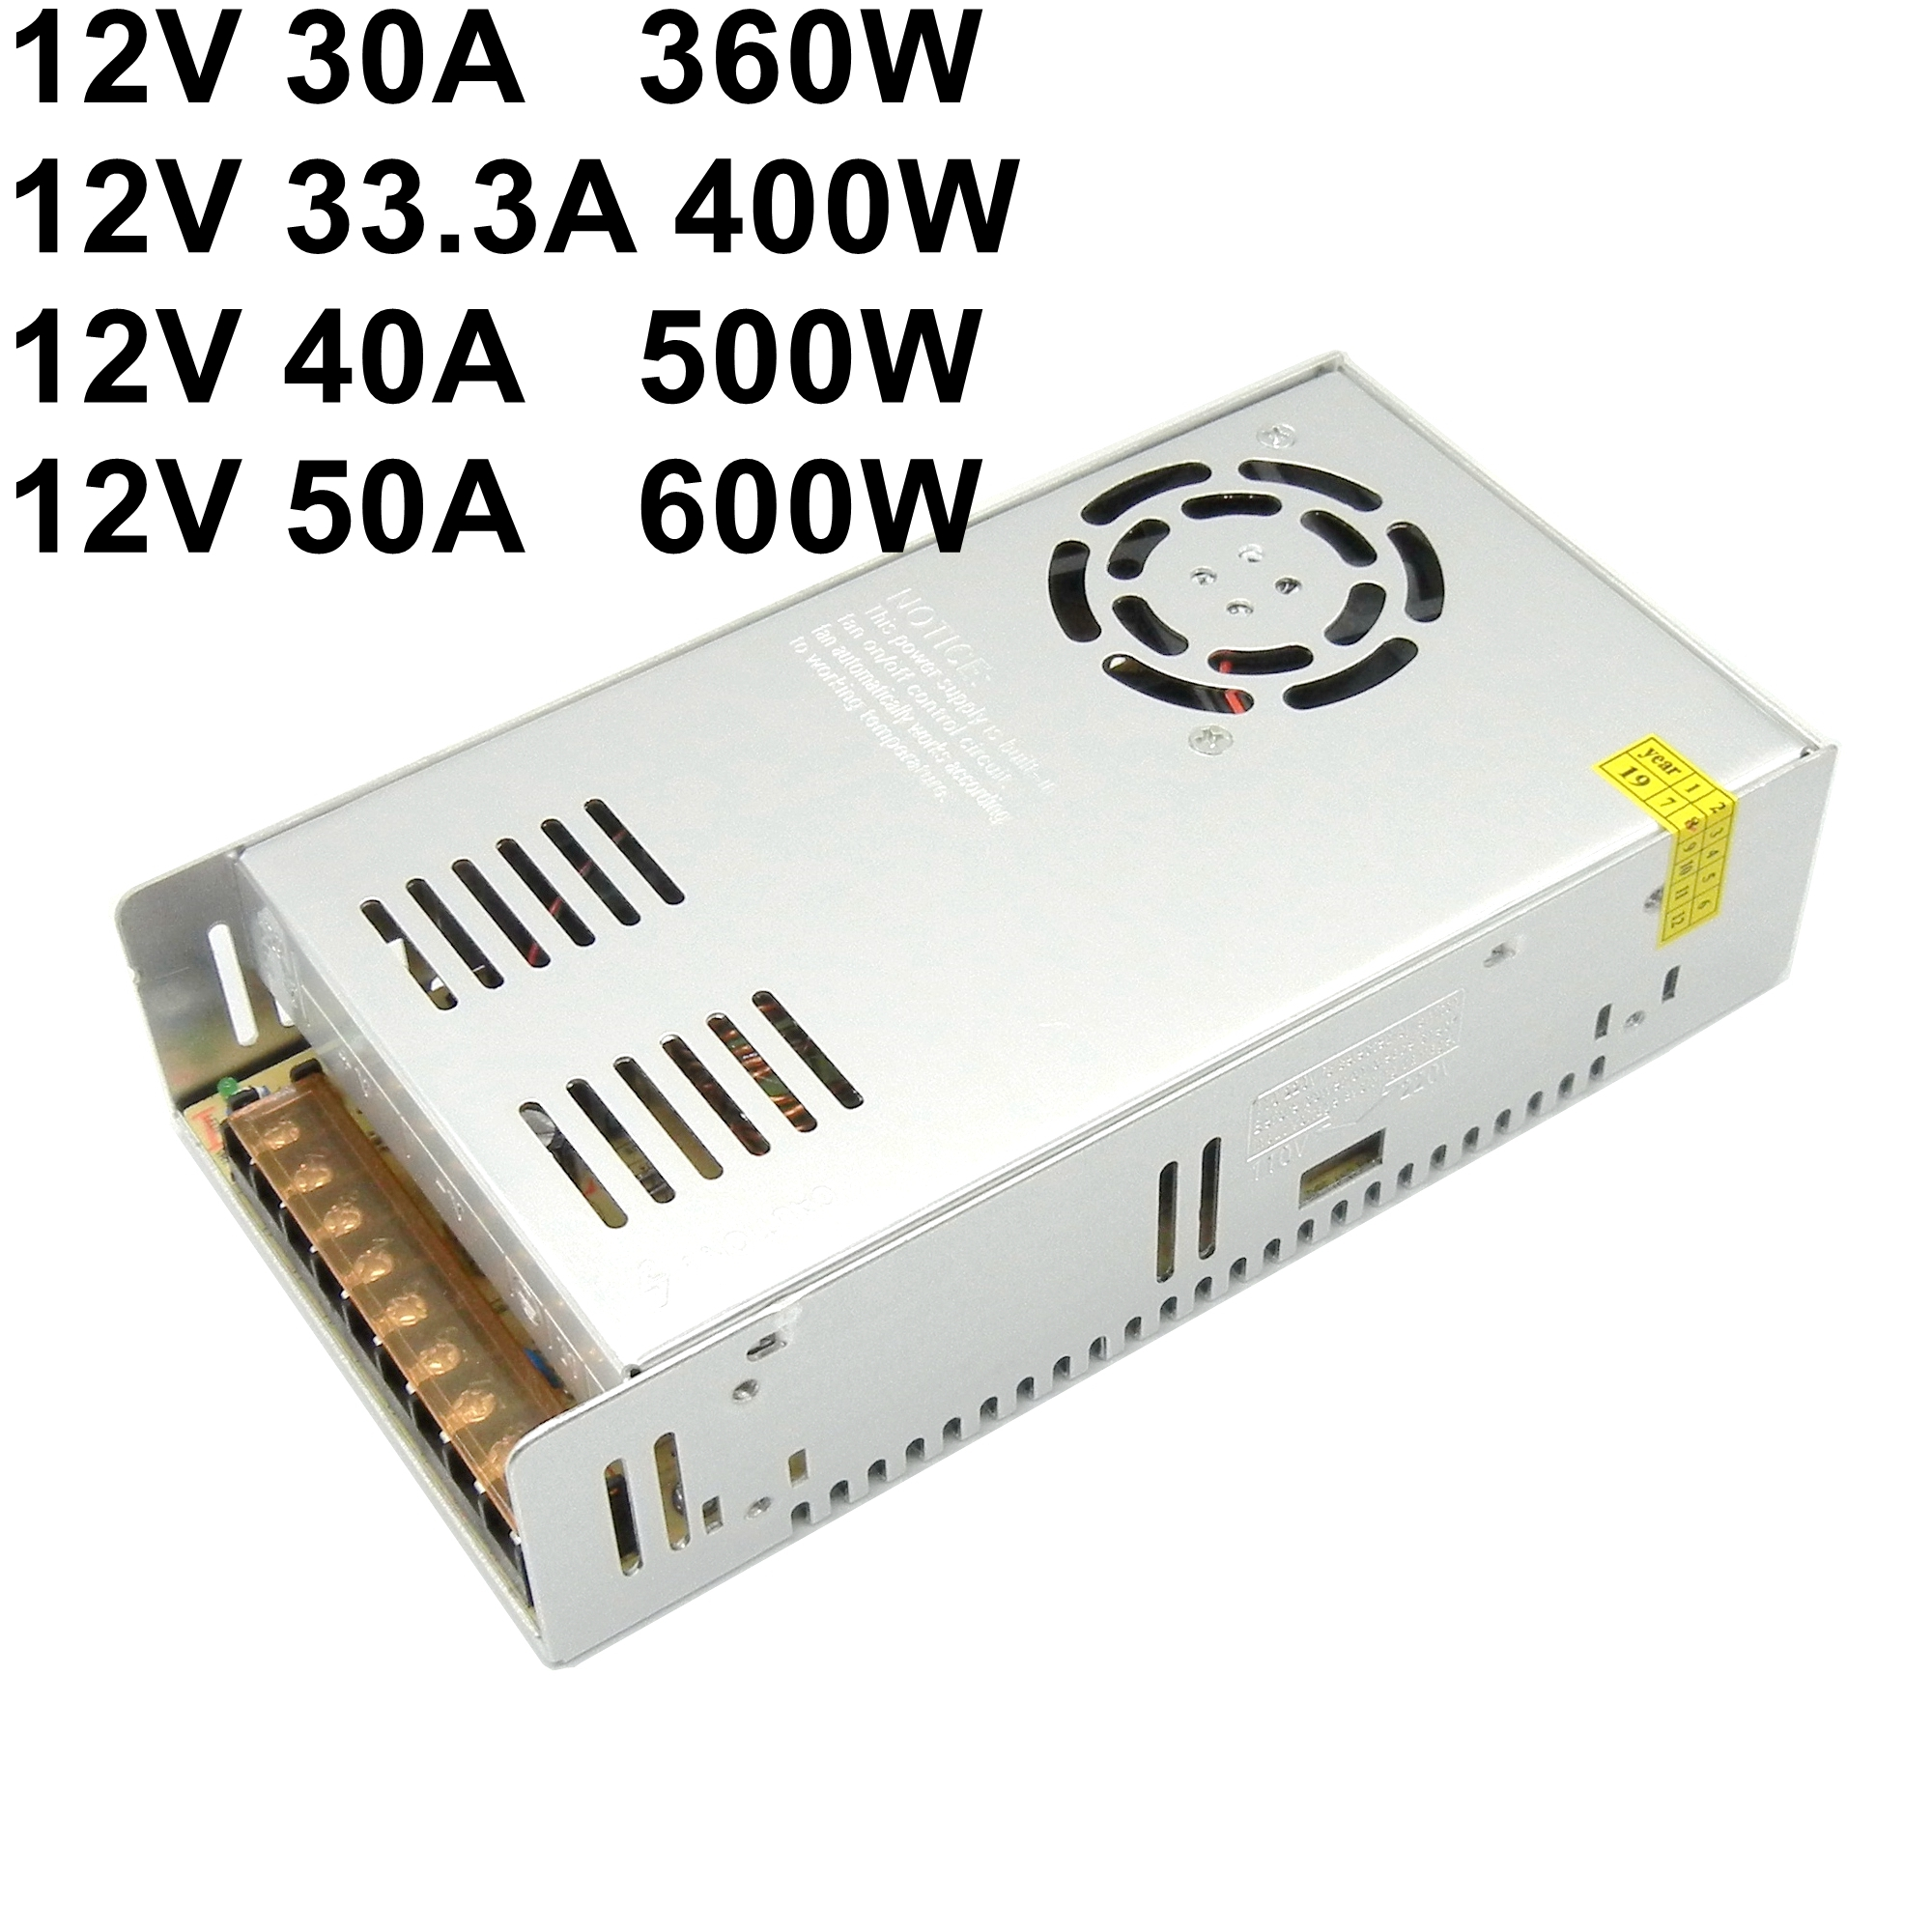 <font><b>DC</b></font> 12V 30A 33A 40A 50A Regulated Switching Power Supply 360W 400W 500W 600W Led Strip Driver Transformer 110V 220V AC TO <font><b>DC</b></font> SMPS image